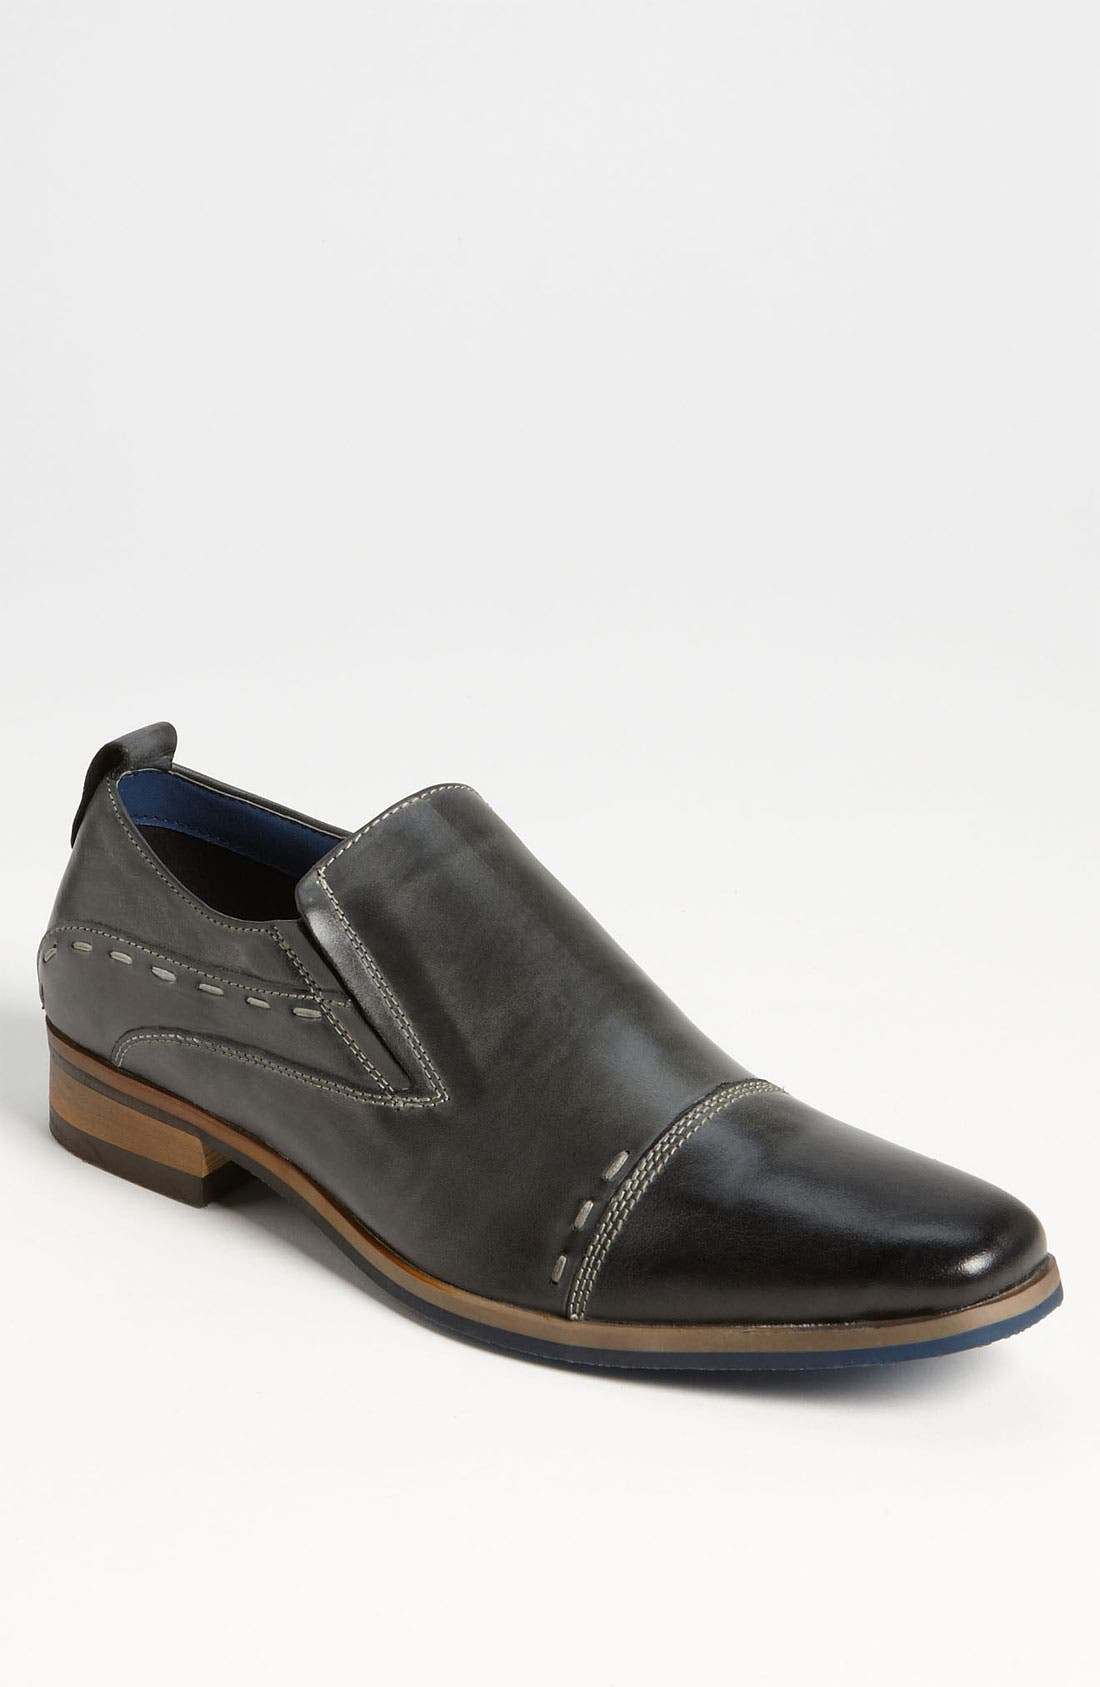 Alternate Image 1 Selected - Steve Madden 'Caddee' Venetian Loafer